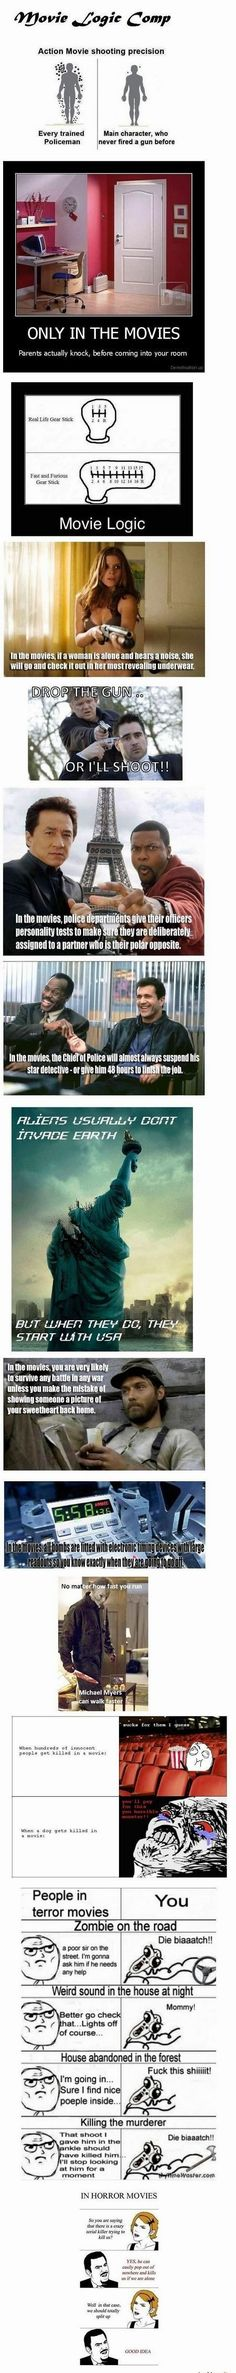 Hilarious Pictures of the week -55 pics- Movie Logic (Compialtion)